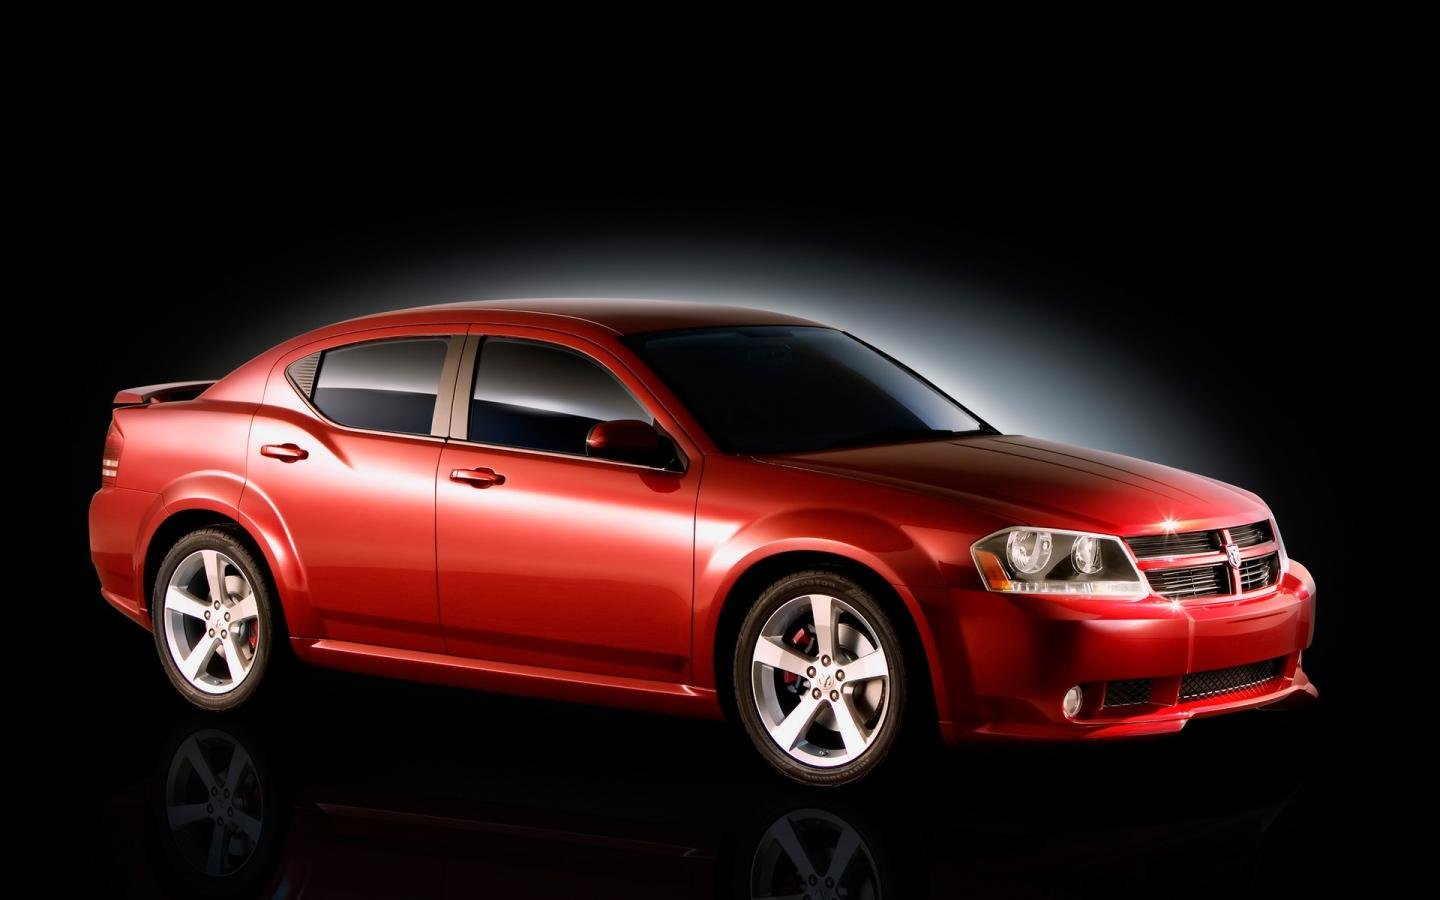 2006 Dodge Avenger Concept Front And Side 1440x900